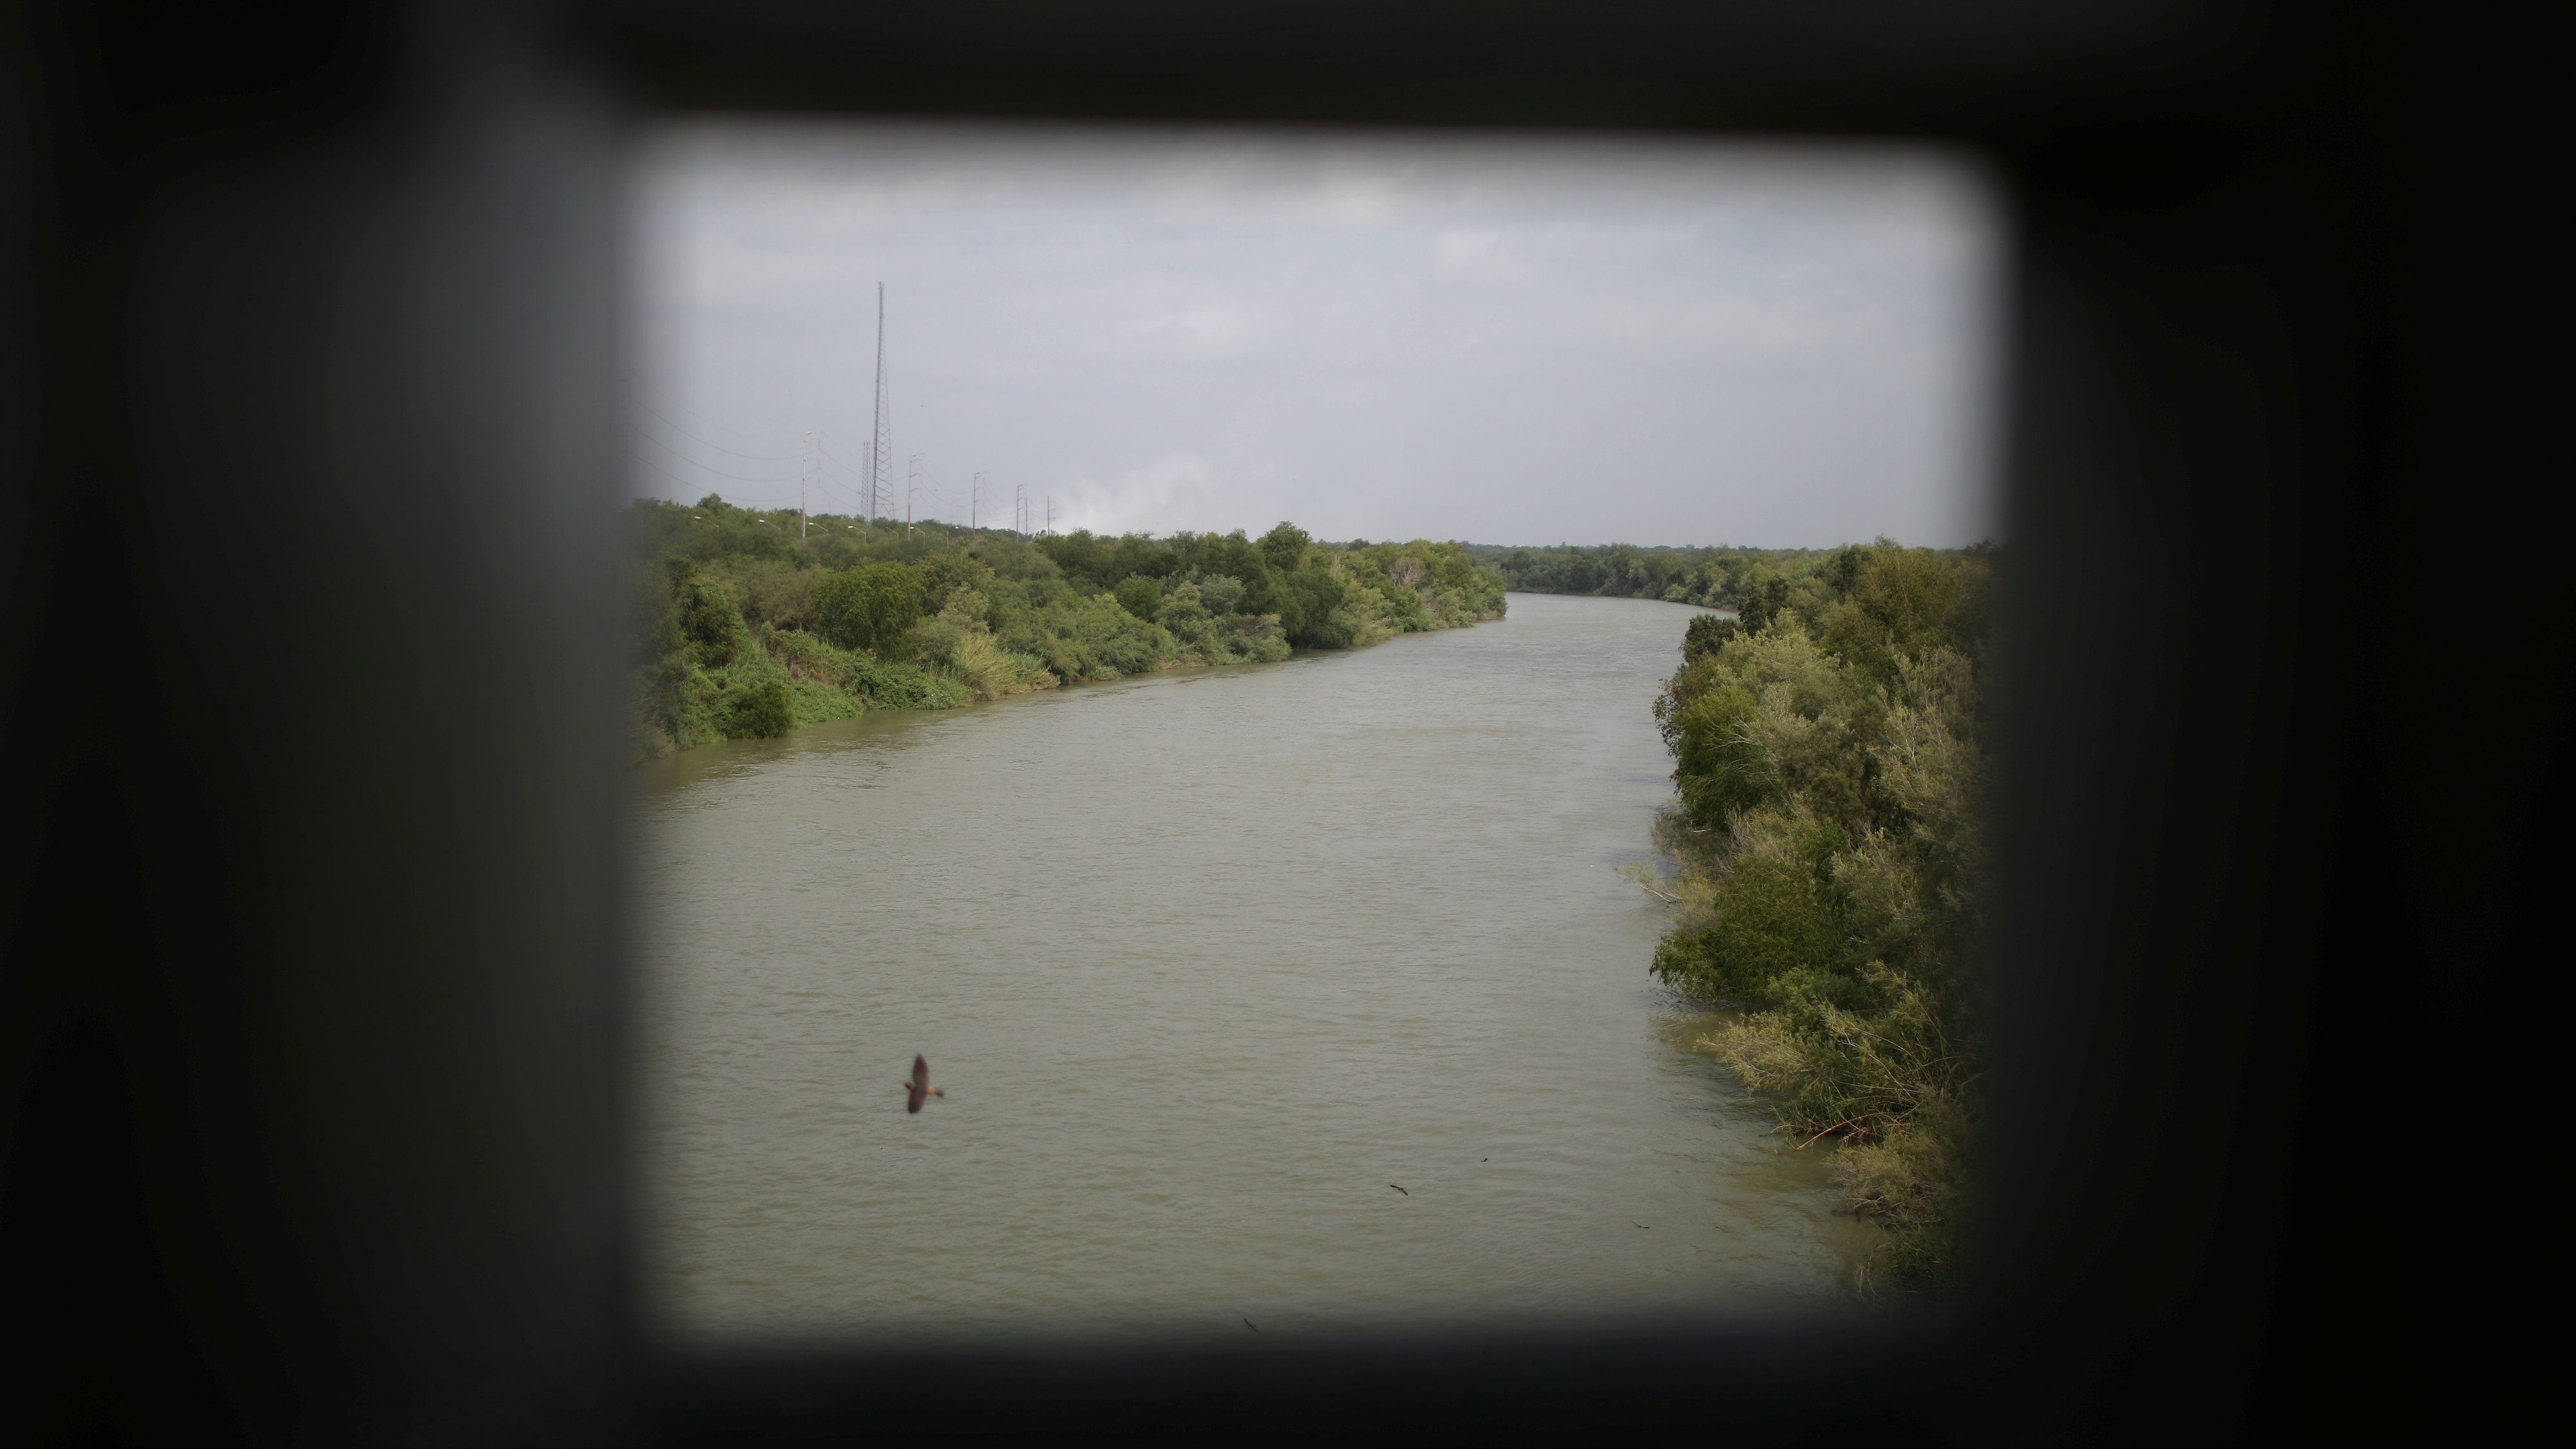 Regenerating the Rio Grande would benefit the environment and both Mexico and the US.